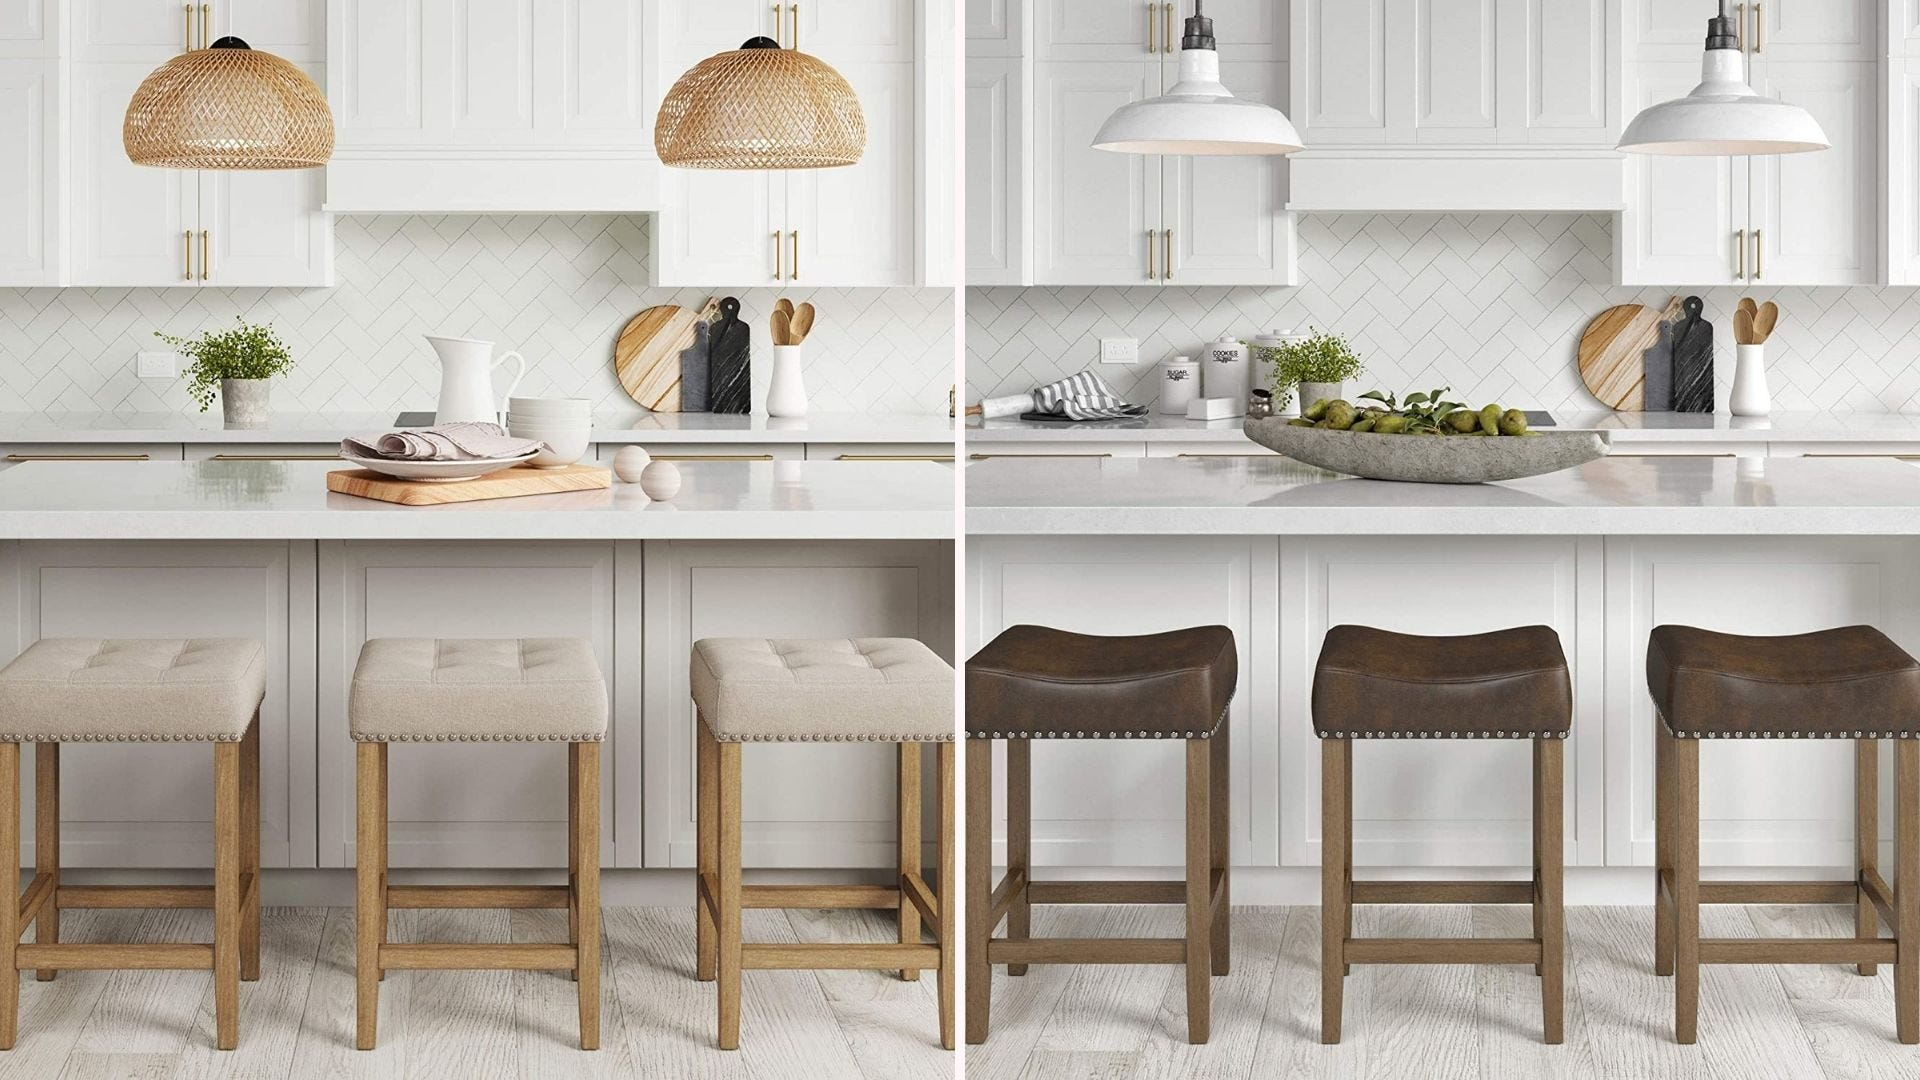 Three natural wooden stools with tan fabric cushions, and three natural dark wooden stools with dark brown leather cushions.